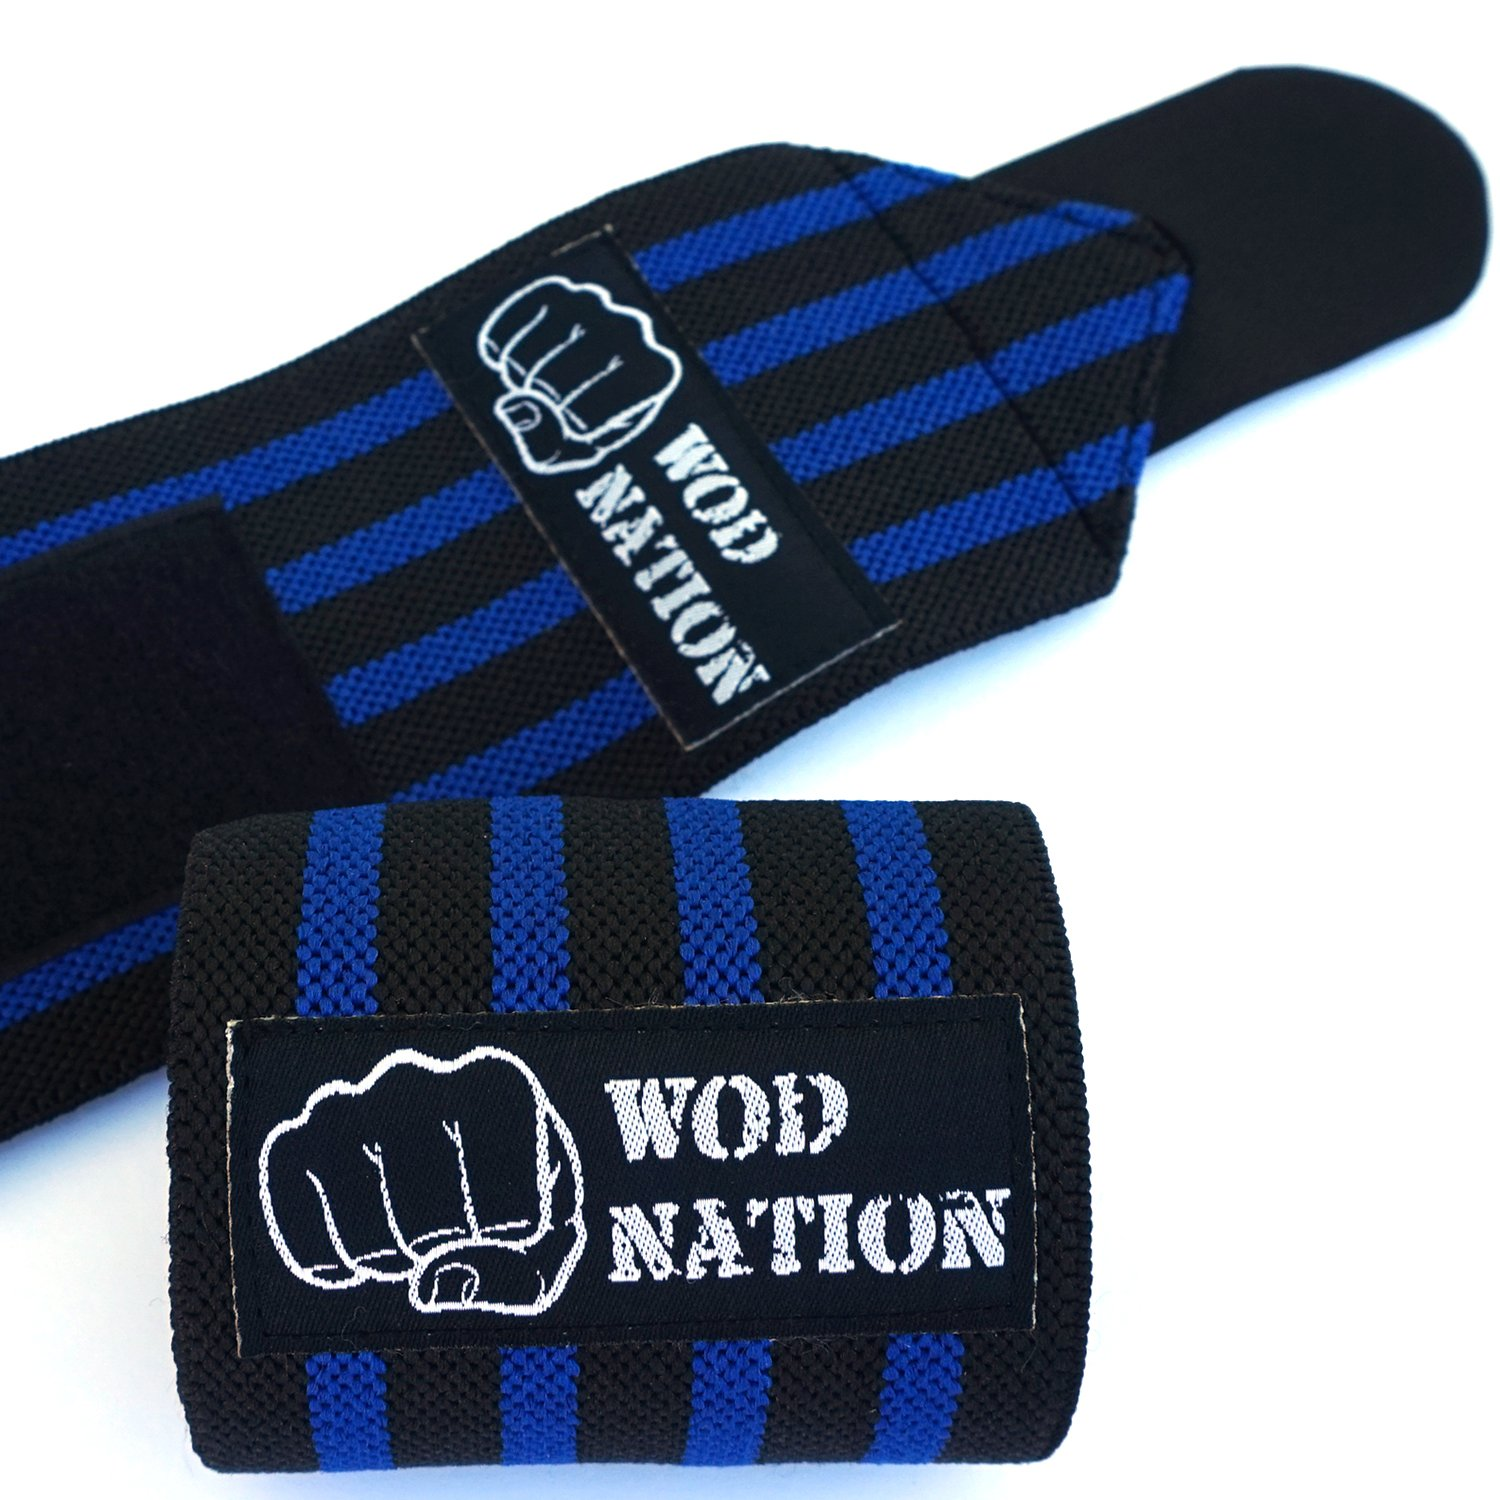 WOD Nation Wrist Wraps by Wrist Support Straps (12'', 18'' or 24'') - Fits Both Men & Women - Strength Training, Weightlifting, Powerlifting - Lift Heavier Weight (18 Inch - Black/Dk Blue) by WOD Nation (Image #4)